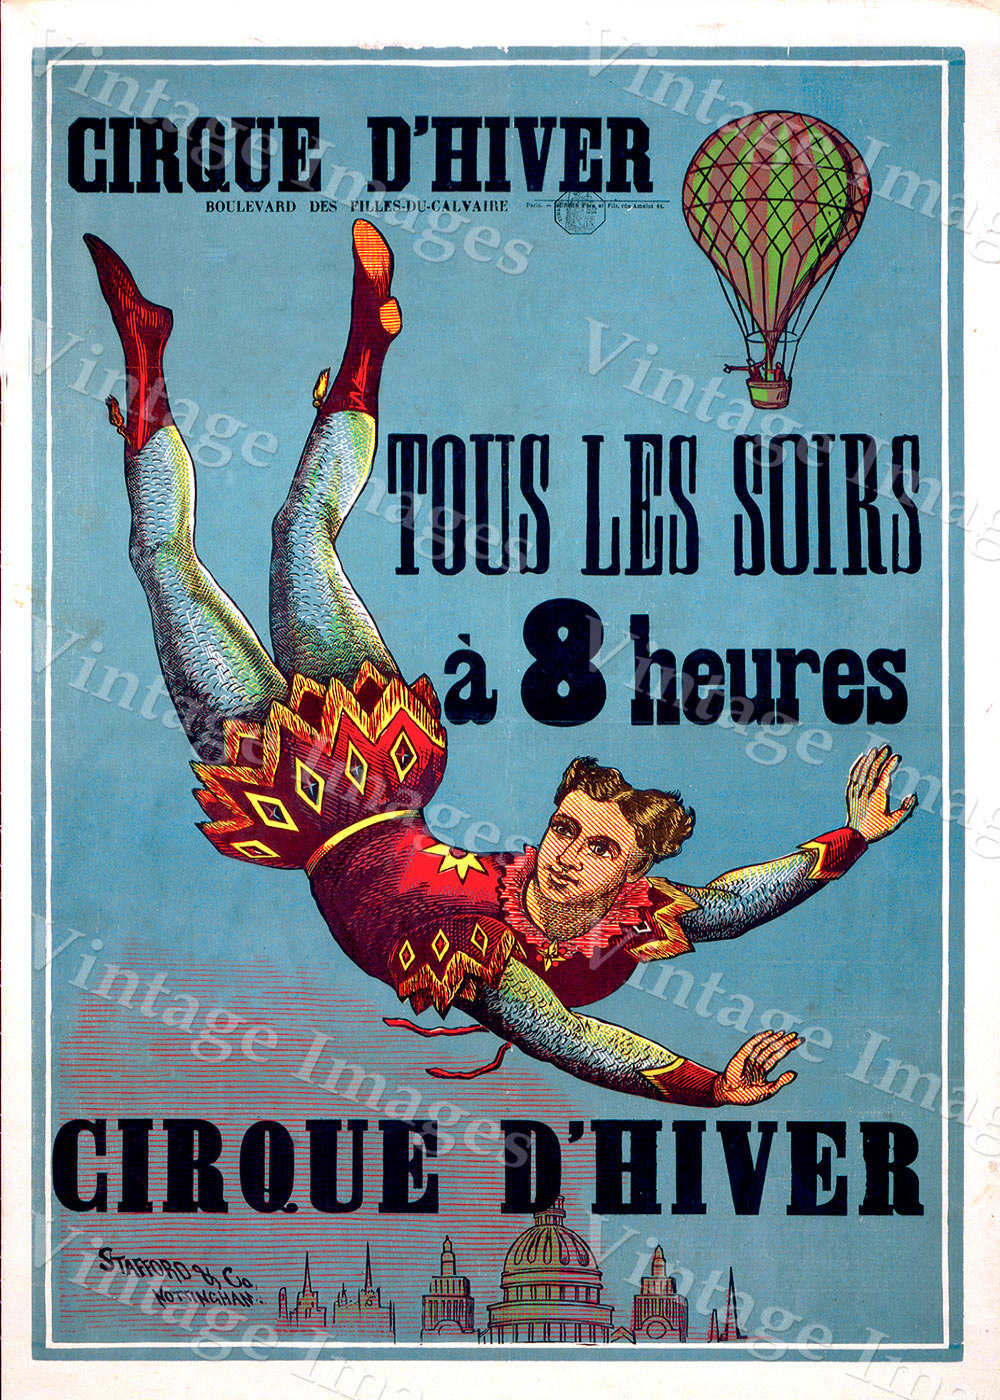 """Vintage French Cirque d' Hiver (Winter Circus) paris france Poster Fine Art Print Giclee home wall decor - 10\"""" x 15\"""" inches [$11.00]"""